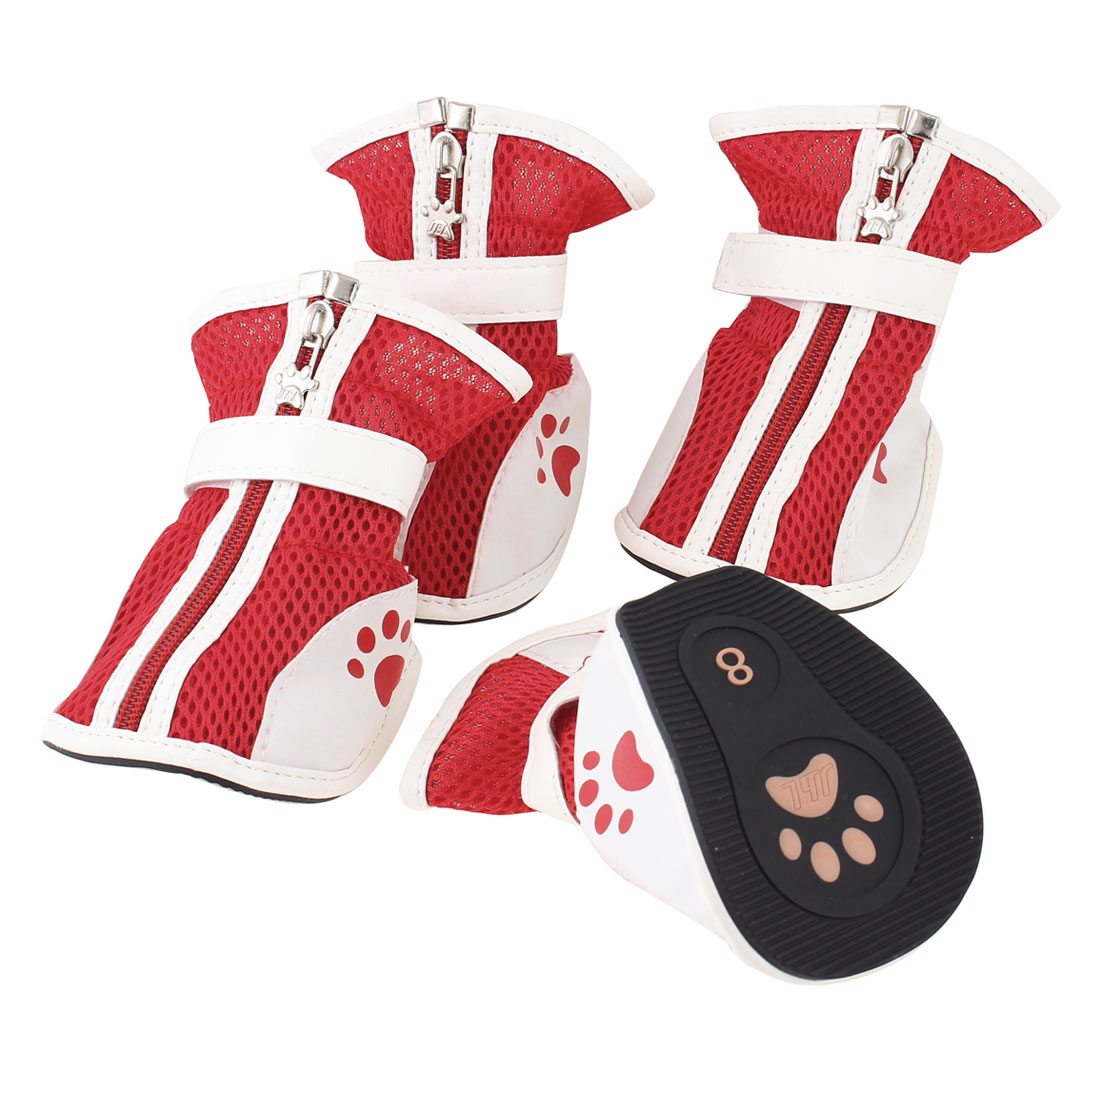 2 Pair Zipper Closure Mesh Design Paw Print Pet Dog Cat Red White Shoes L